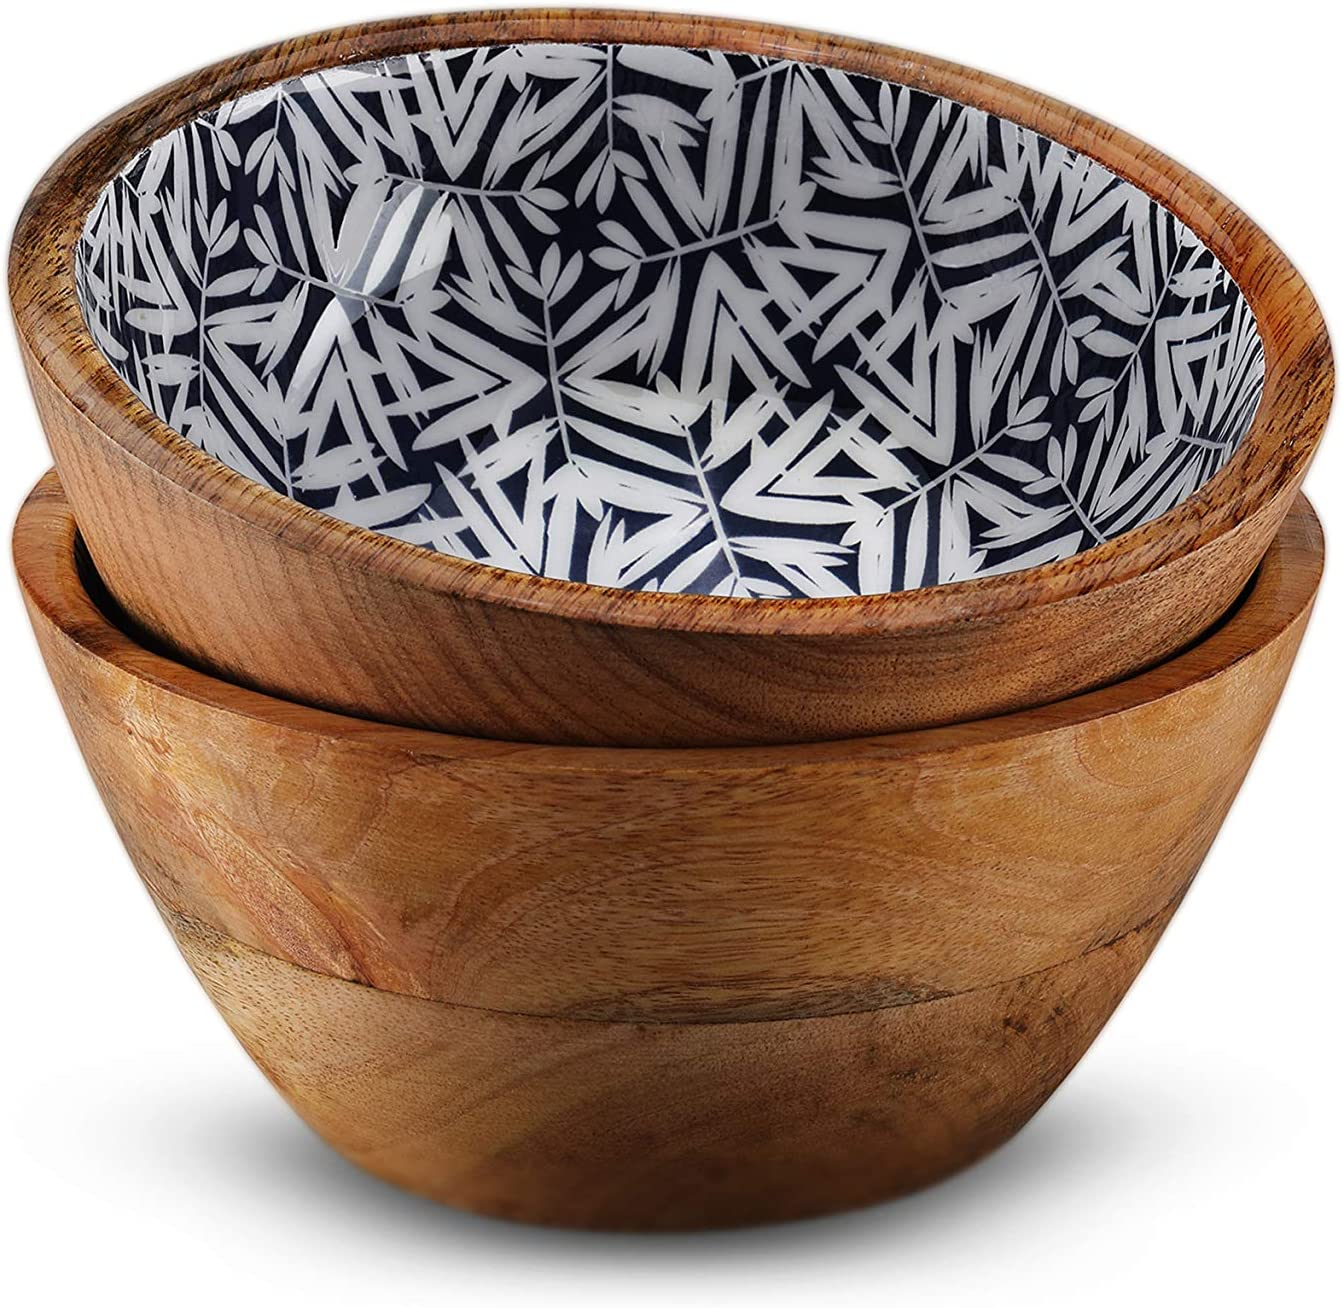 Wooden Bowls for Food or Salad Bowls Set, Small Bowl for Serving Pasta and Cereal, Set of 2 Wood Bowl, 6 inch by 3 inch, Mango Wood, Blue Leaves